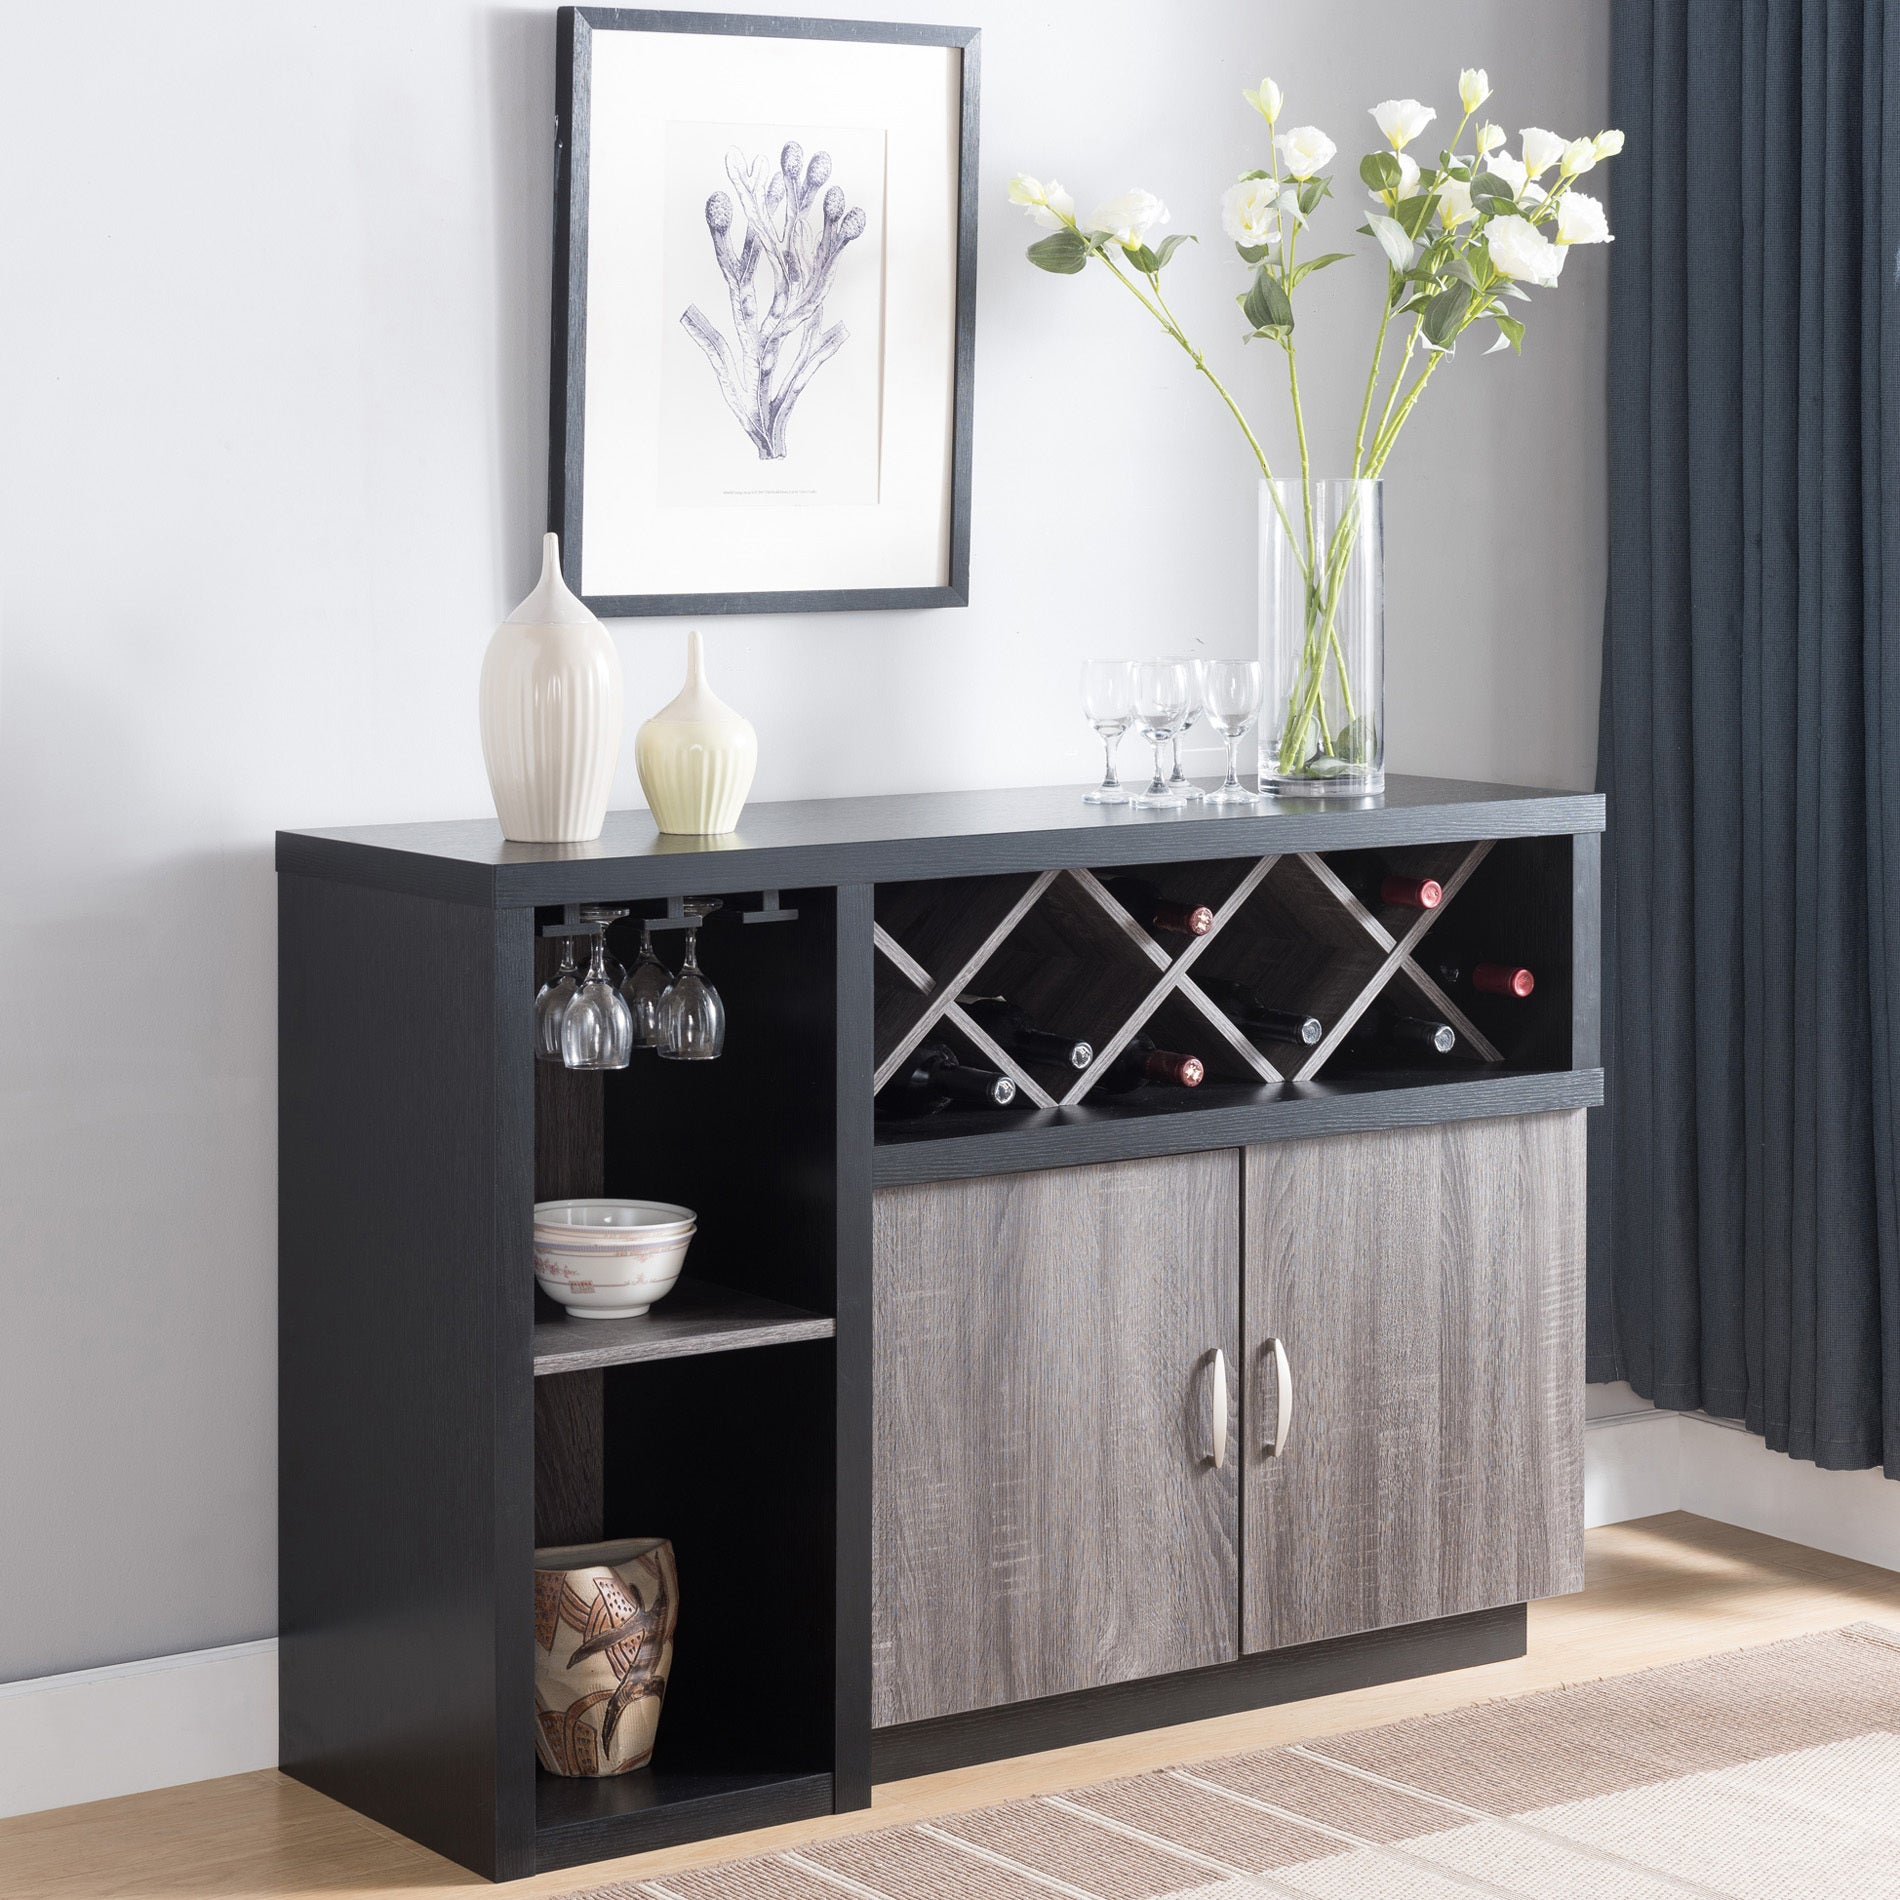 Lantana Contemporary Distressed Grey Buffetfoa Regarding Wooden Buffets With Two Side Door Storage Cabinets And Stemware Rack (View 20 of 30)